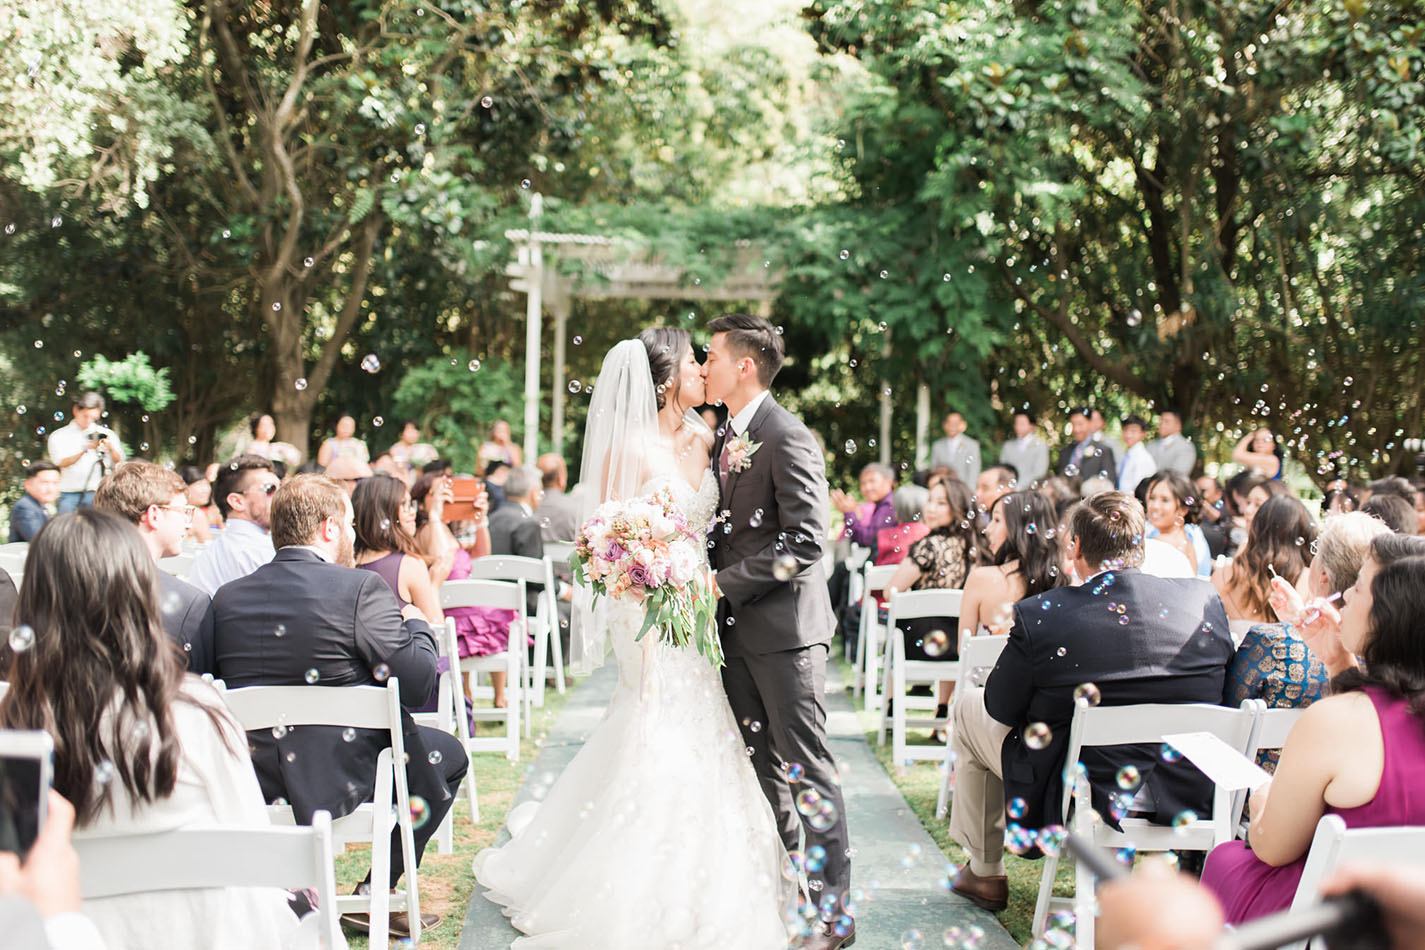 Whimsical garden wedding ceremony site.